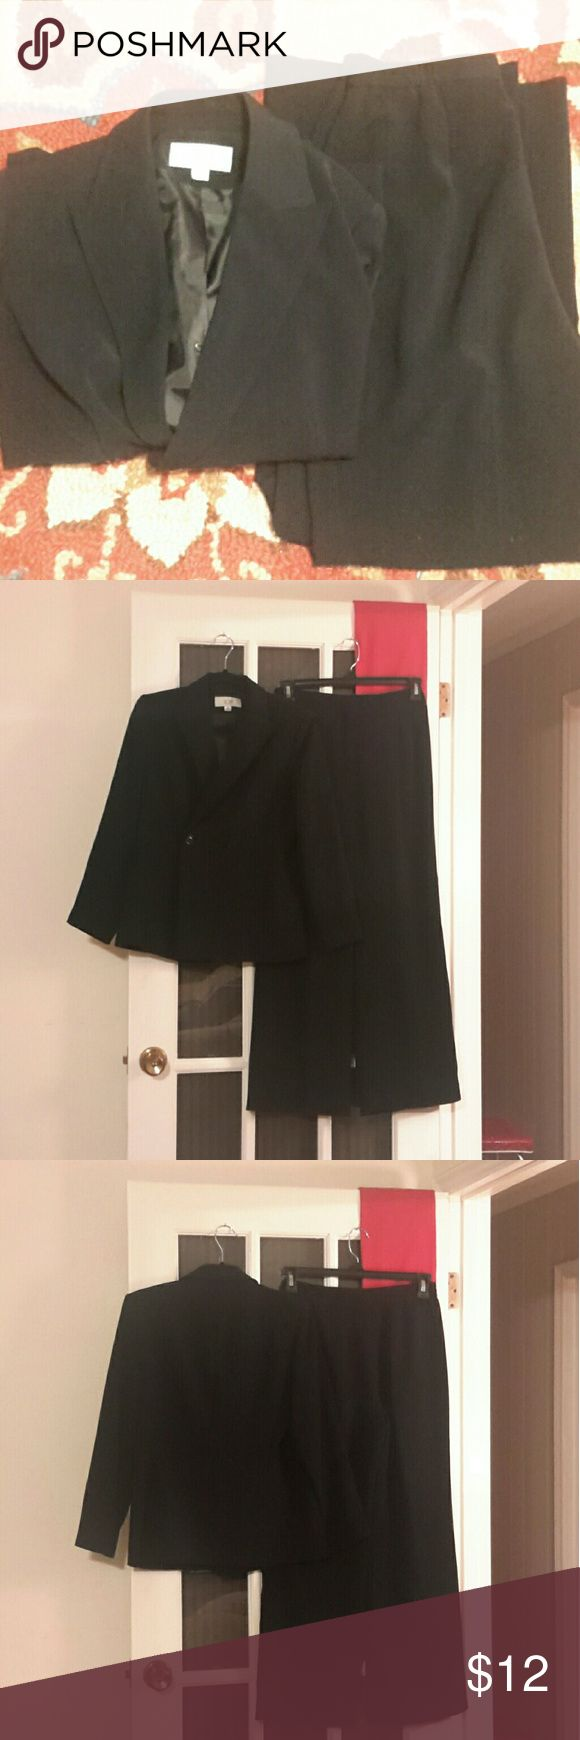 Le Suit Pant Suit - We've replaced the Little Black Dress with the Little Black Pant Suit - Fully Lined dressy pant suiting Petite - Double Breastfed - single row buttons - 100% Polyester  - Pant inseam - 29 inches Le Suit Pants